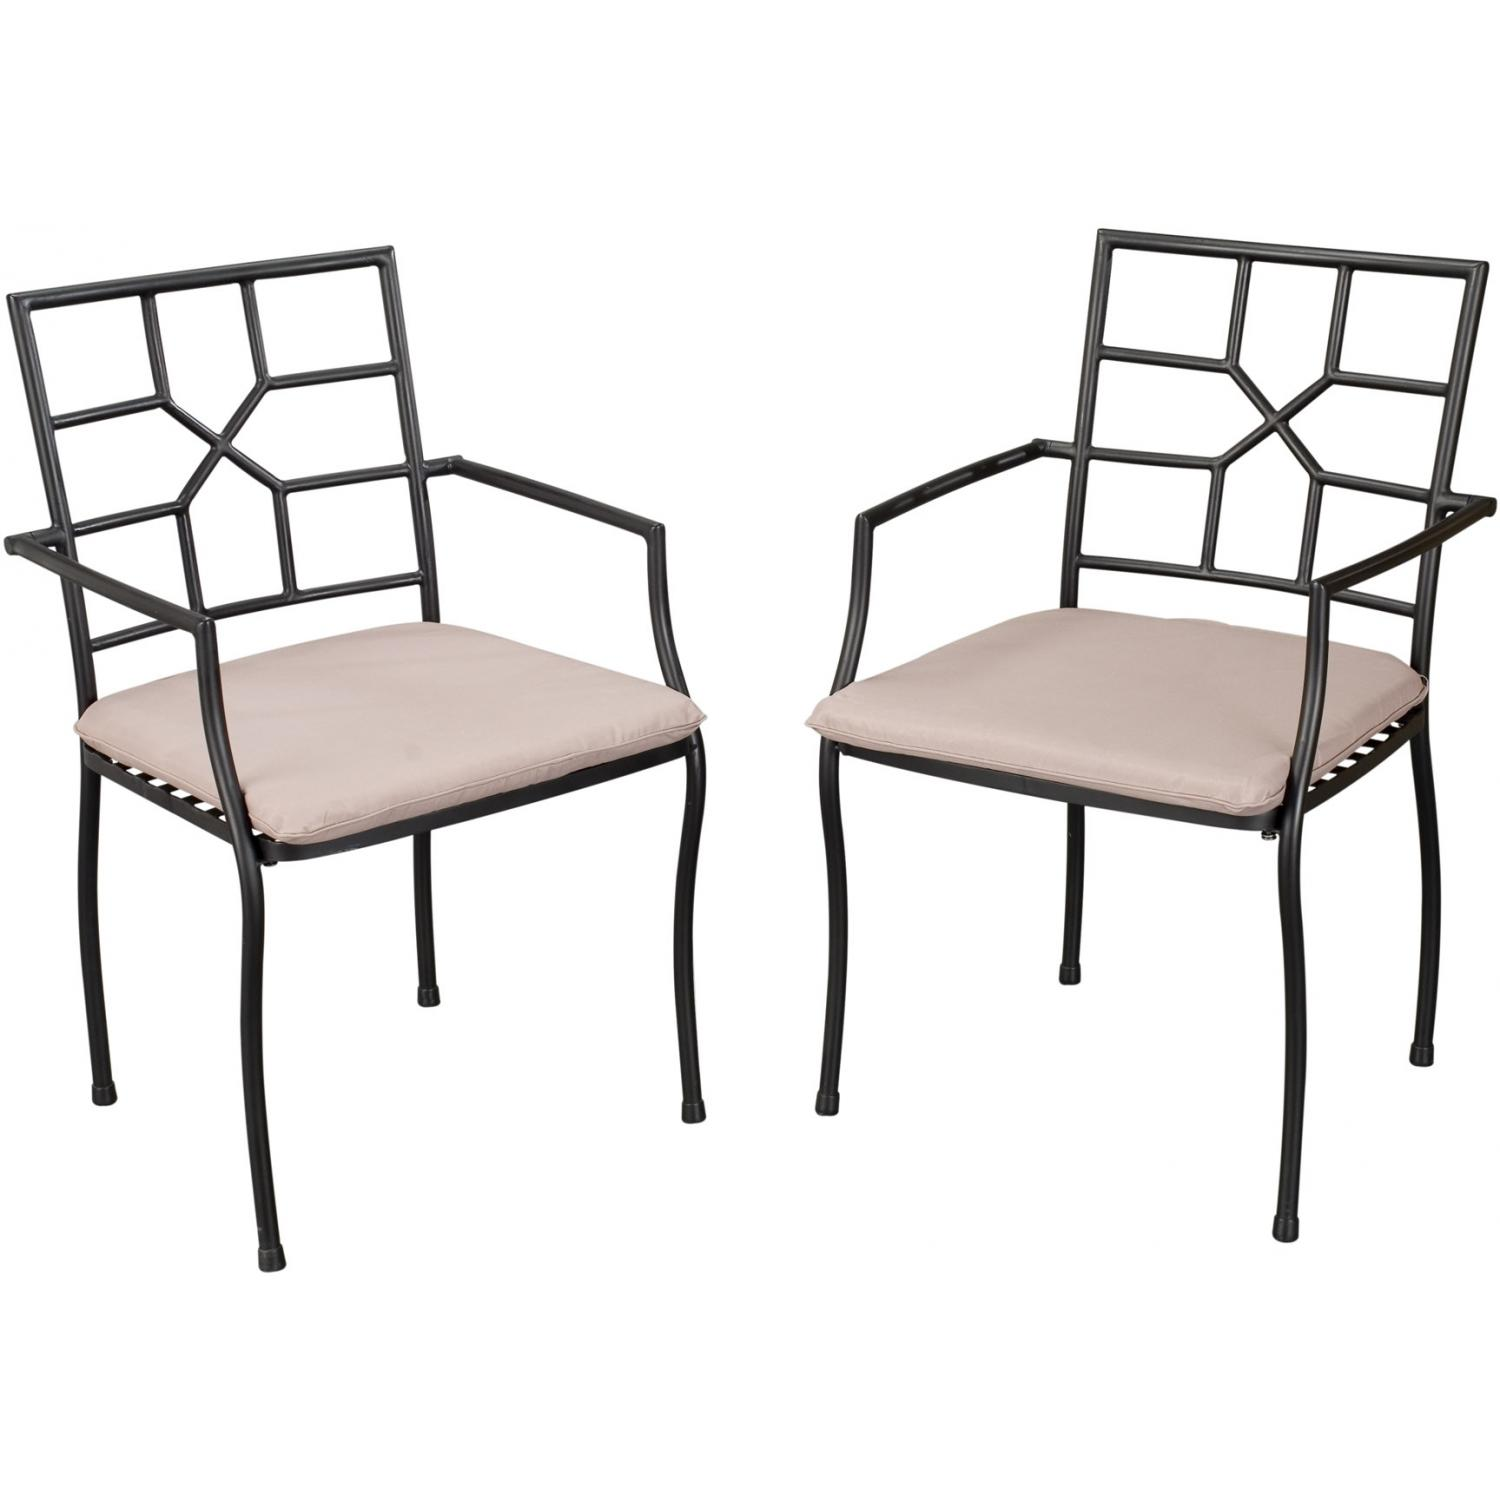 Home Styles Cambria Outdoor Patio Dining Arm Chairs - Set Of 2 - Black